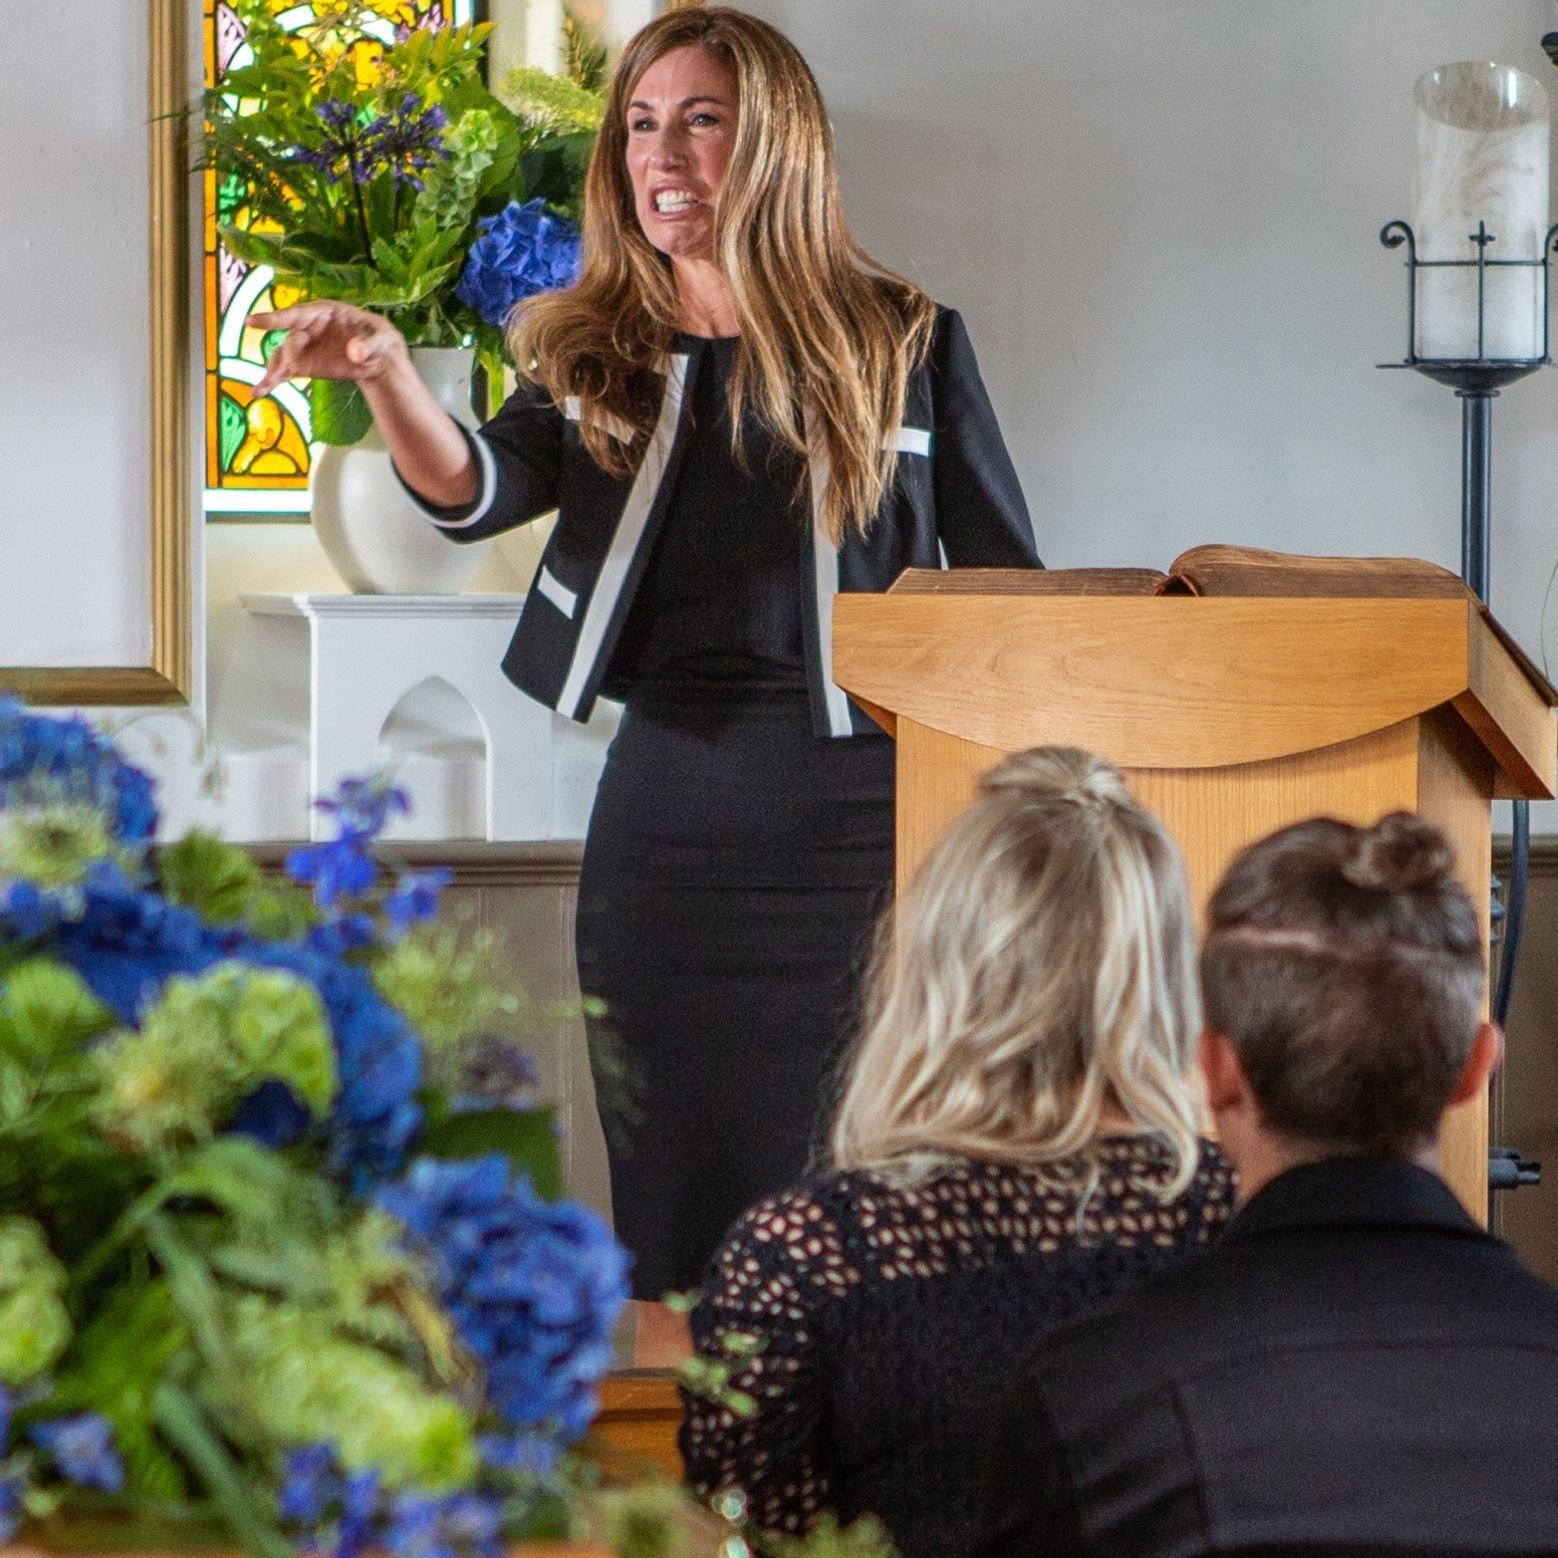 Emmerdale hints at Megan Macey's exit after Frank Clayton's dramatic funeral